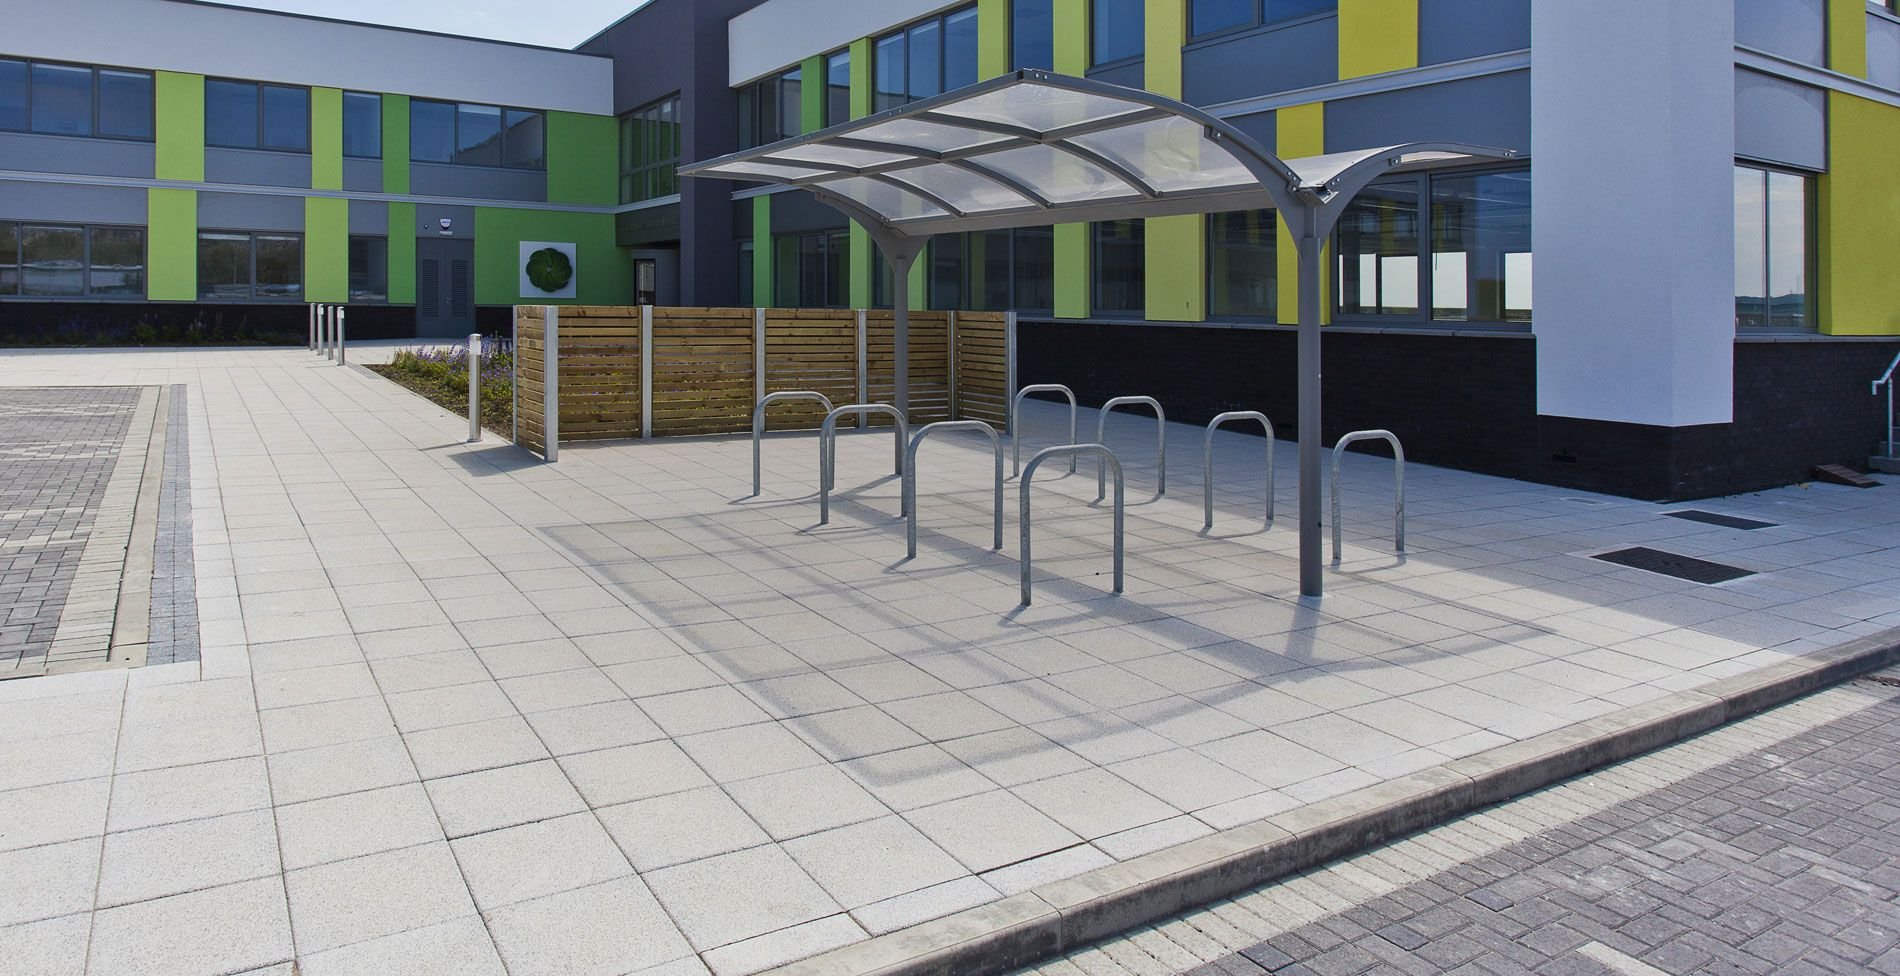 Blueton Limited - The name in street & site furniture, #landscape architecture, #street furniture, #cycle storage, #site furnishings